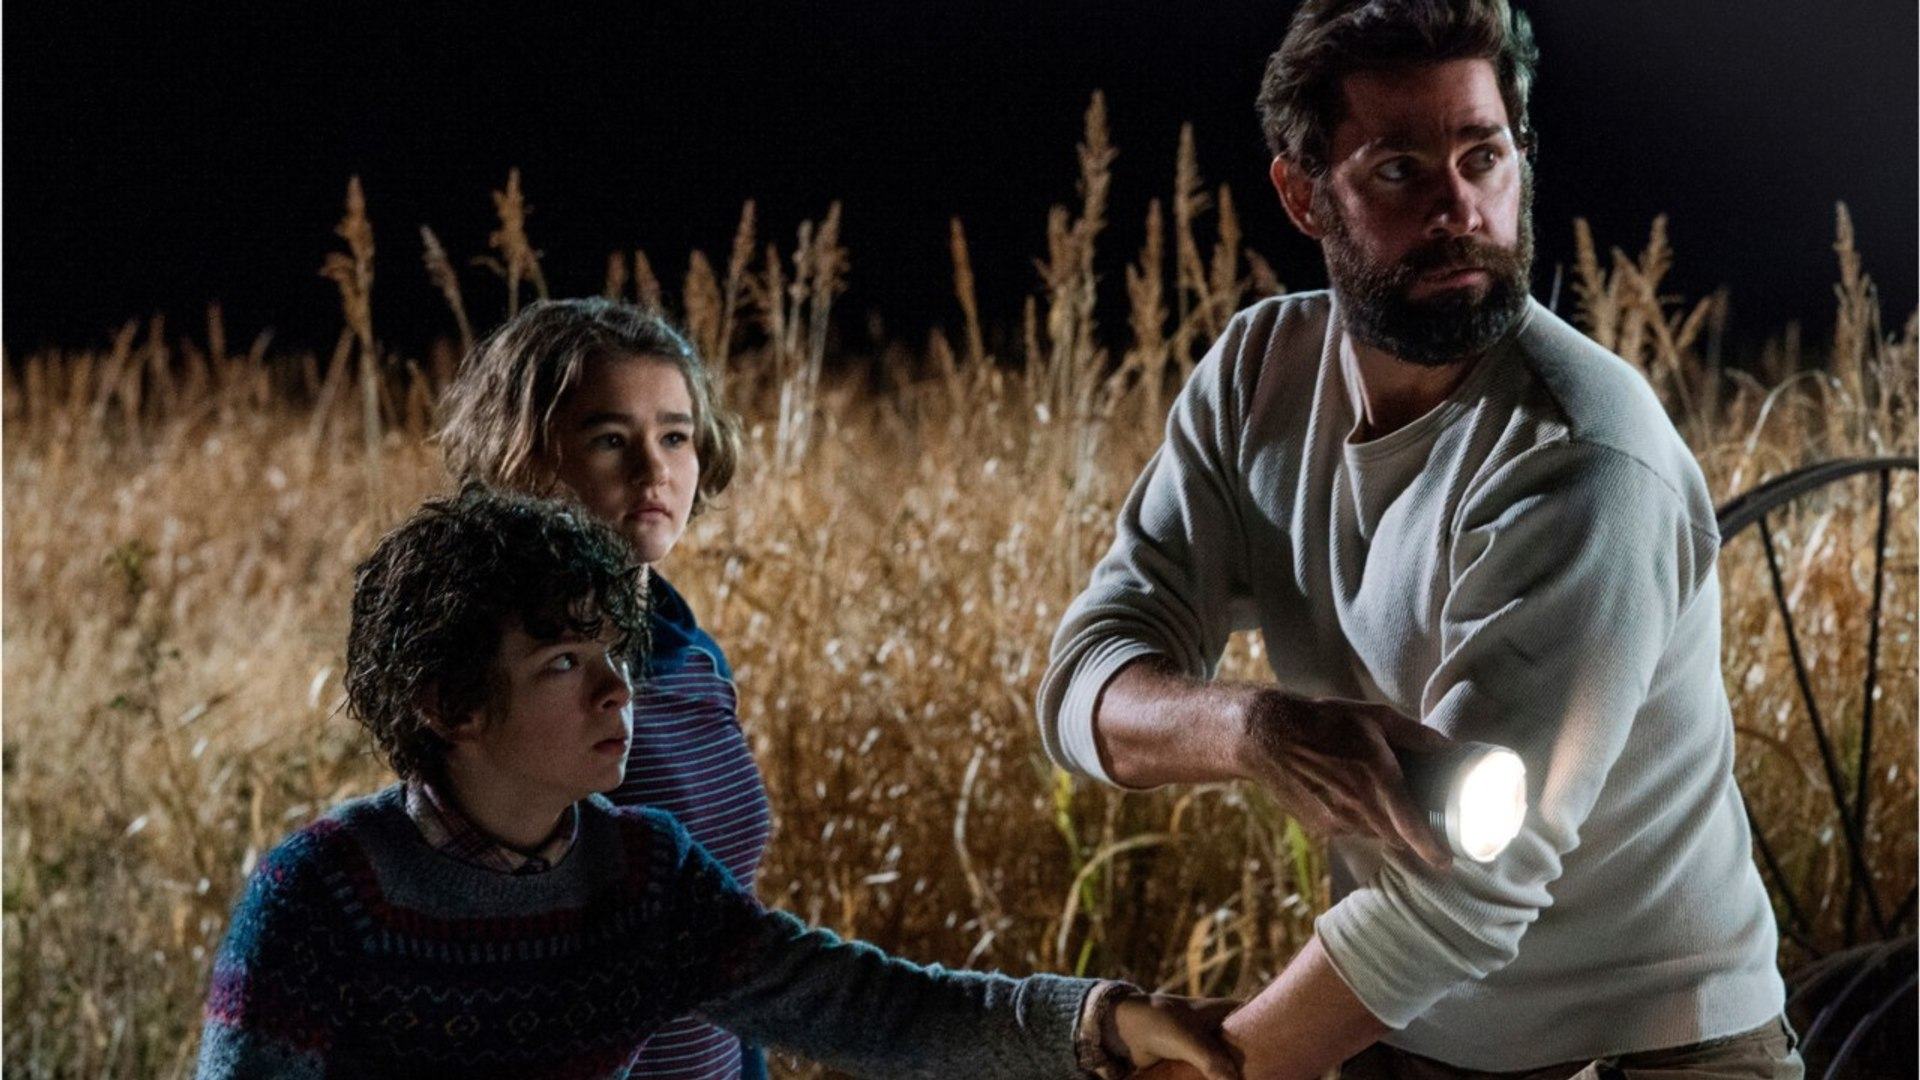 John Krasinski Reveals 'A Quiet Place' Monsters Are From Outer Space